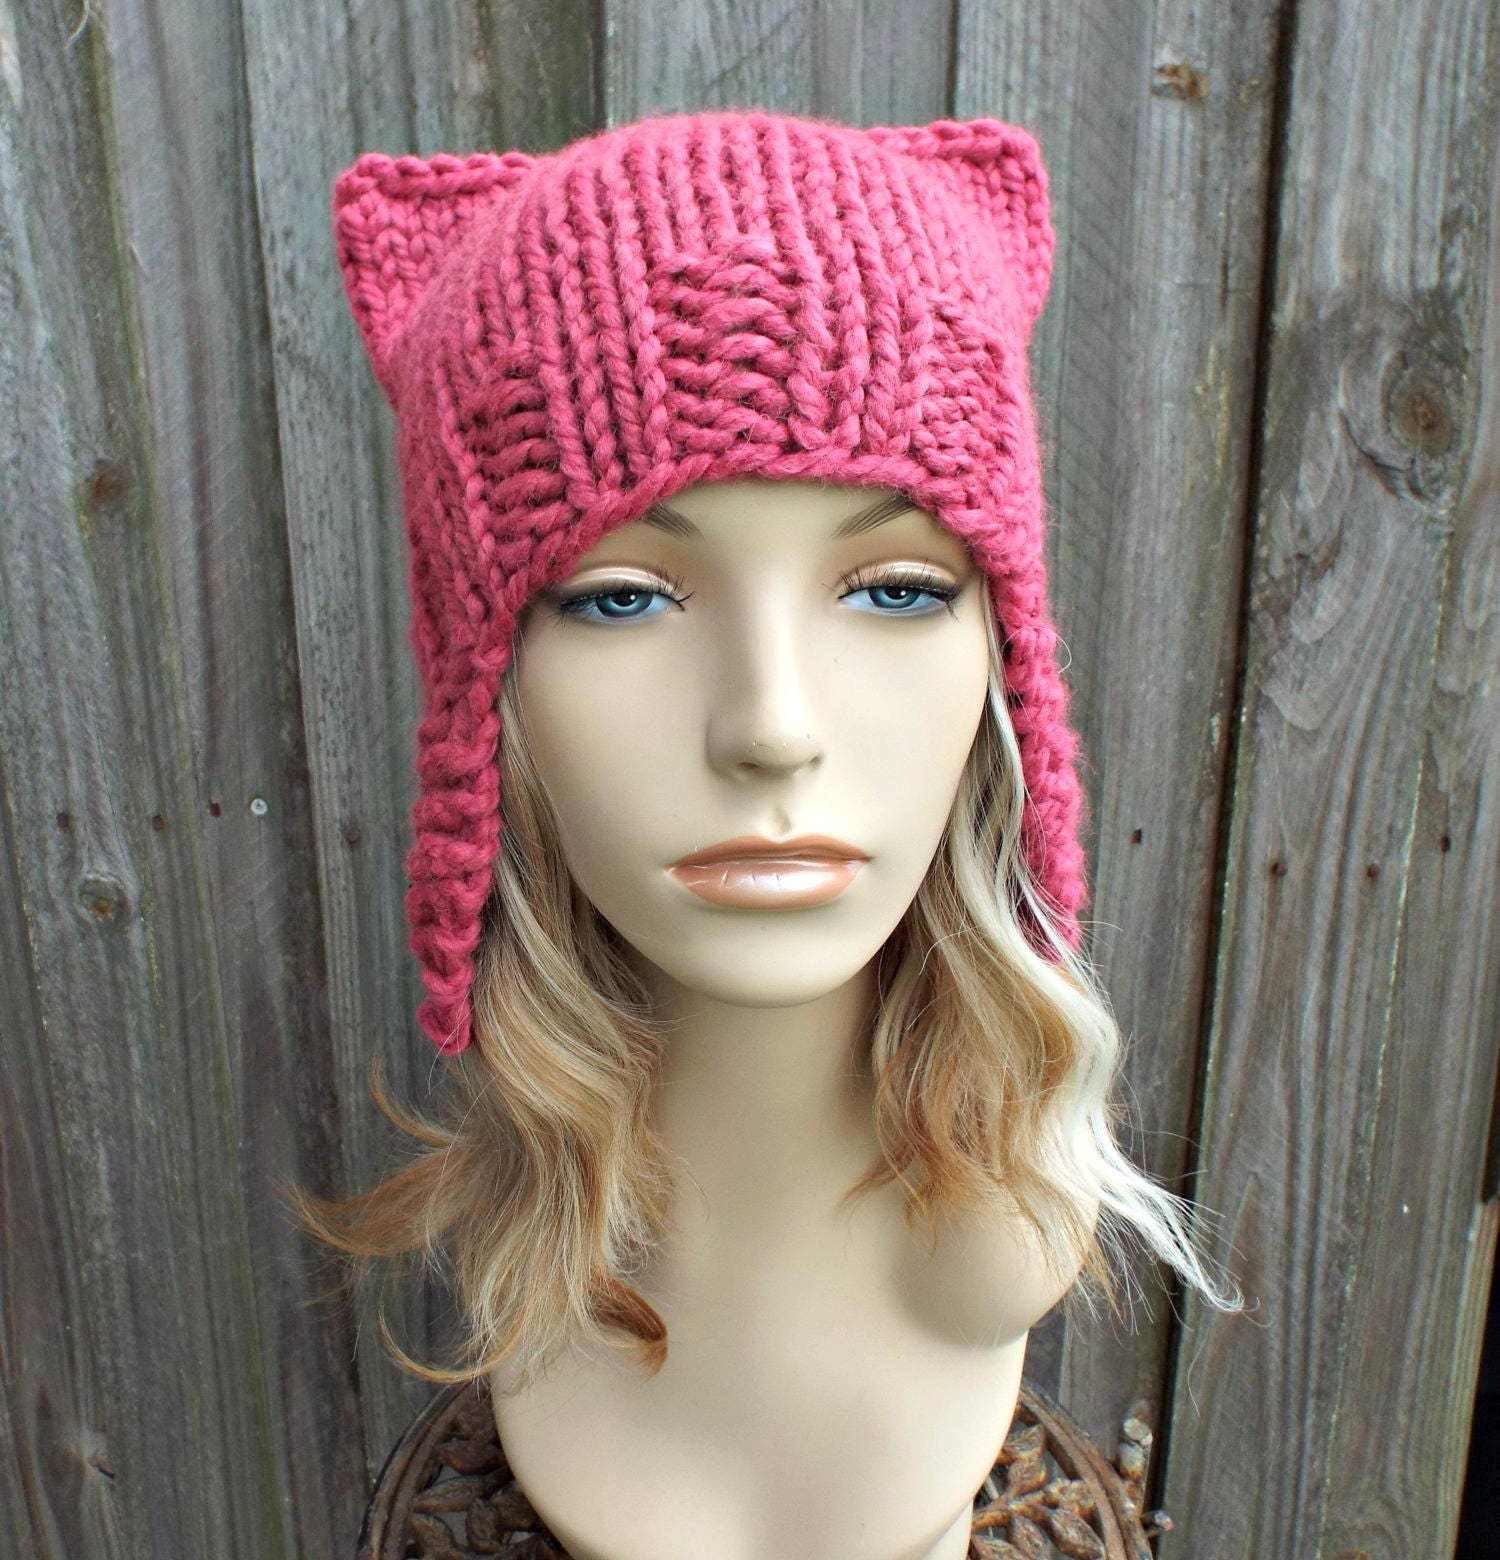 Pink Pussyhat Pink Cat Hat Womens Hat - Pink Ear Flap Cat Hat - Ear Flap Hat  Pink Hat Pink Beanie Pink Pussy Hat - READY TO SHIP 7755a88adf4